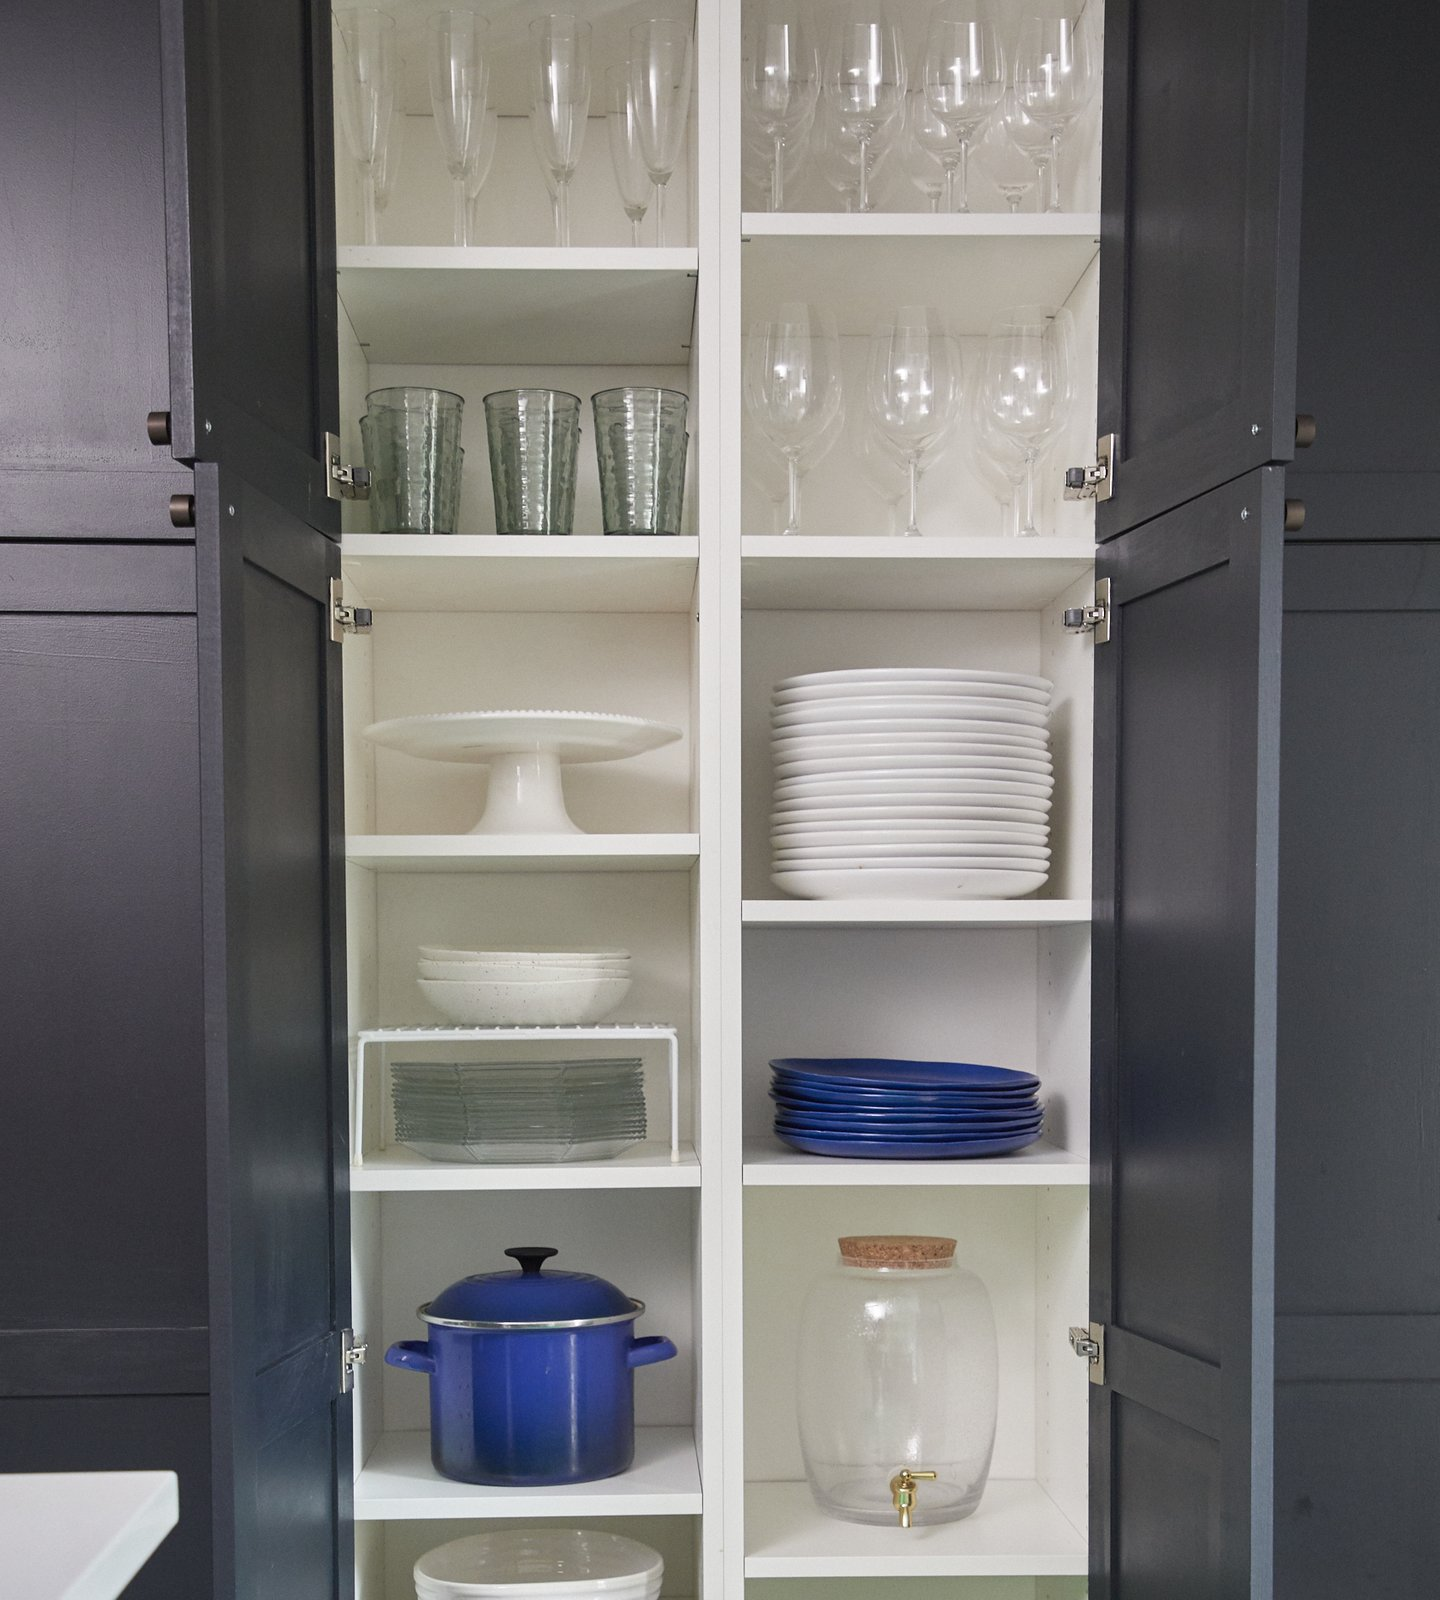 Kitchen and Colorful Cabinet Floor-to-ceiling cabinets add ample storage space and also help hide any mess.  Photos from Before & After: A Brooklyn Kitchen Shines After a Much-Needed Renovation